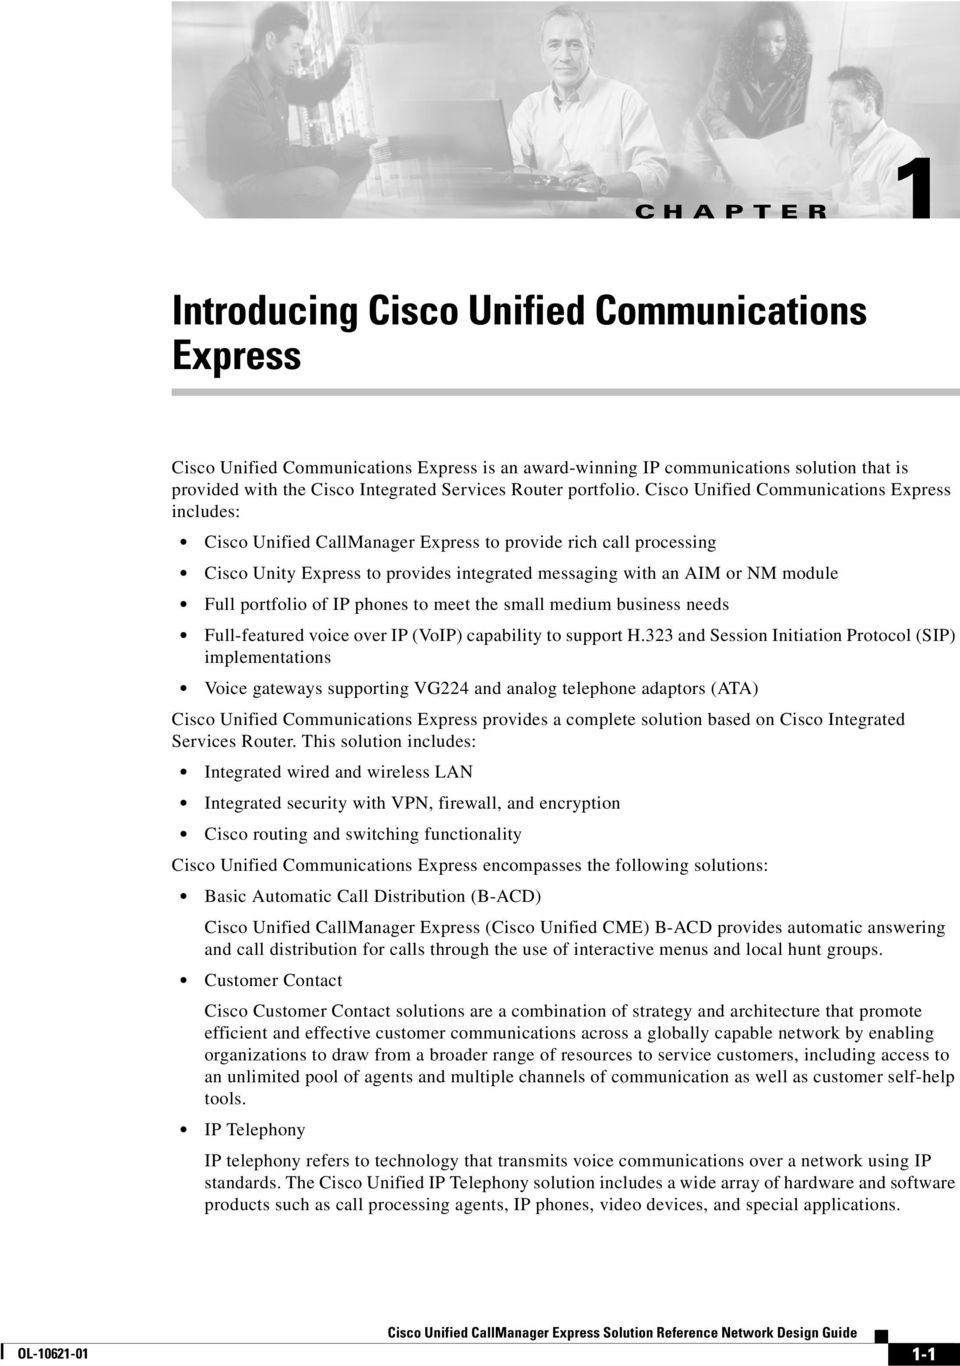 Cisco Unified Communications Express includes: Cisco Unified CallManager Express to provide rich call processing Cisco Unity Express to provides integrated messaging with an AIM or NM module Full